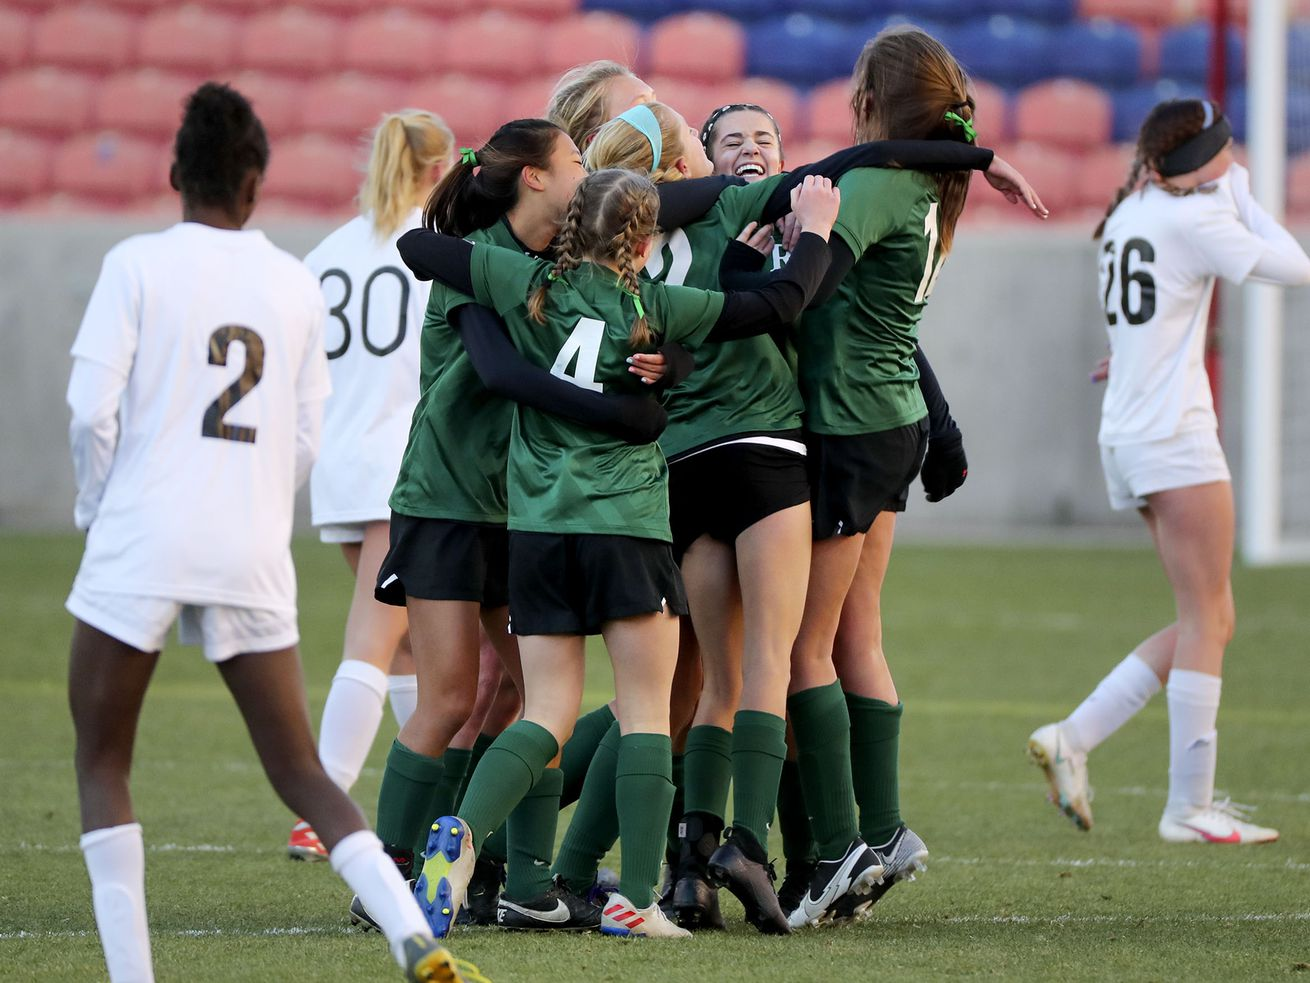 High school girls soccer: Rowland Hall captures fourth straight 2A title with flurry of second-half goals